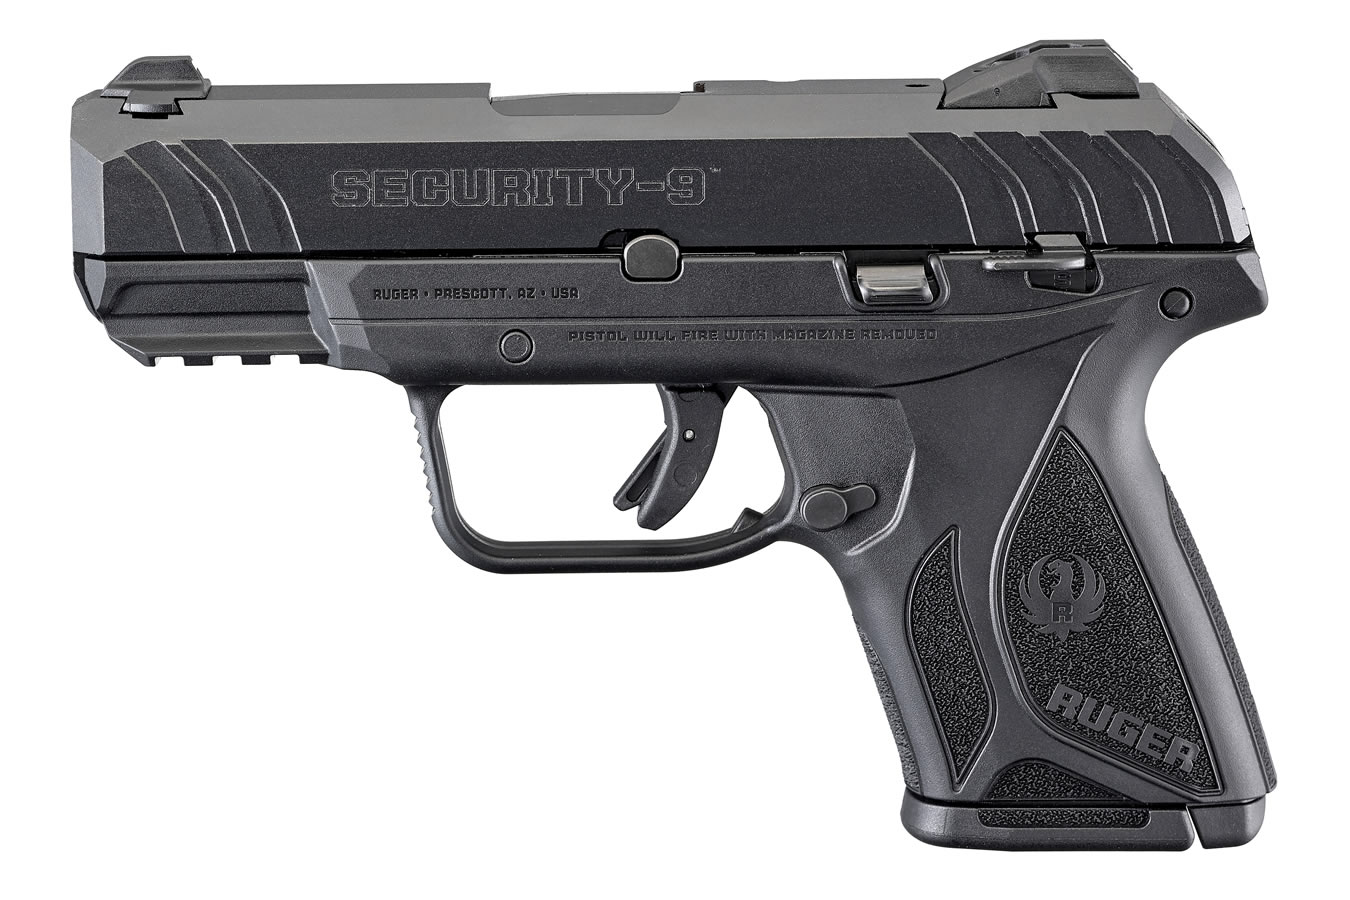 SECURITY-9 COMPACT 9MM PISTOL